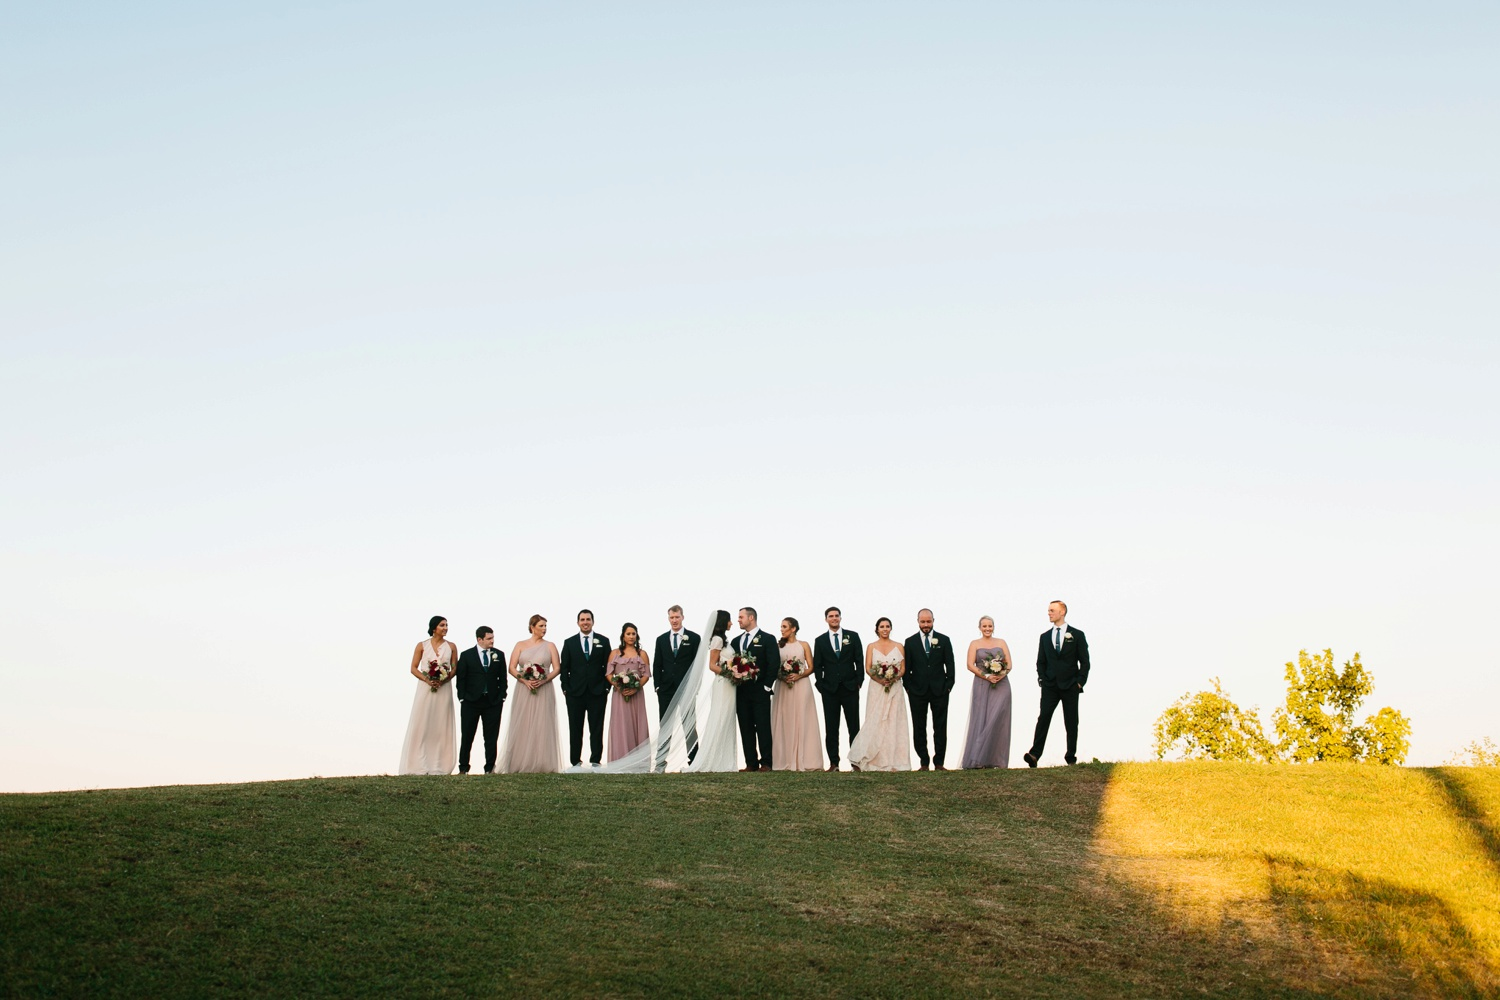 Kadee + Tyler | a raw, emotional wedding at the Filter Building on White Rock Lake in Dallas, TX by North Texas Wedding Photographer, Rachel Meagan Photography 155